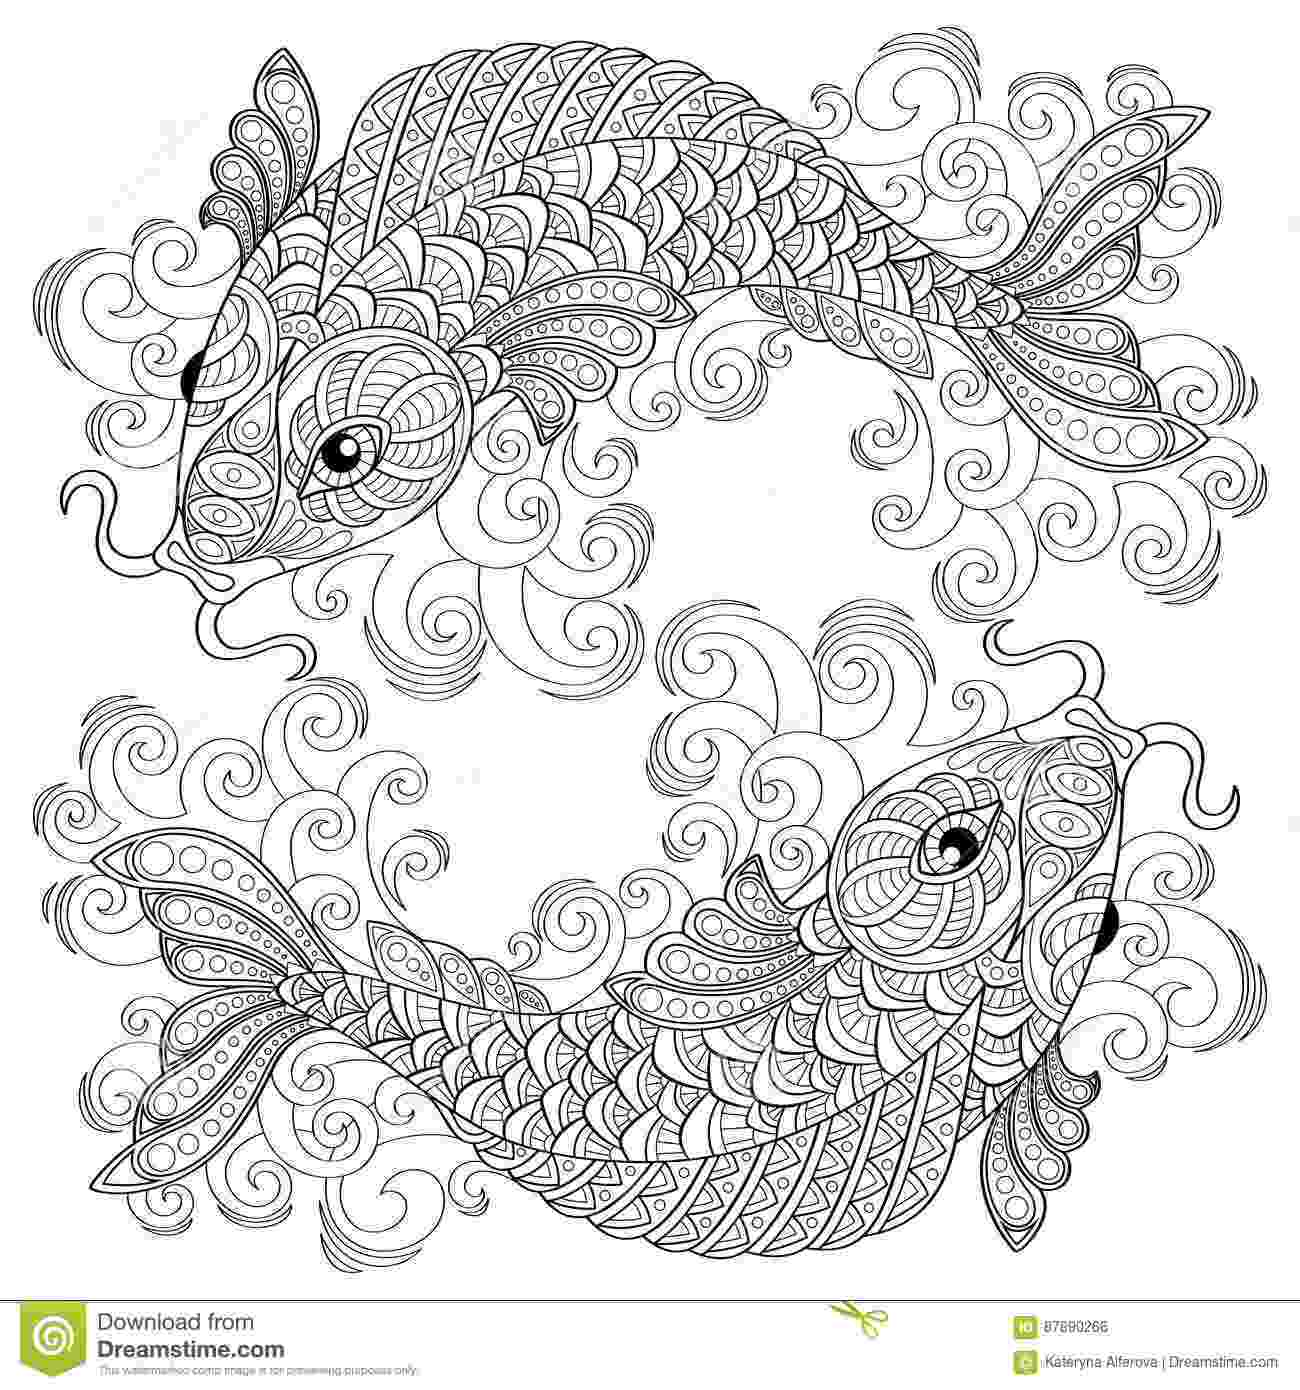 black and white coloring pages for adults antistress cartoons illustrations vector stock images and for coloring black pages adults white